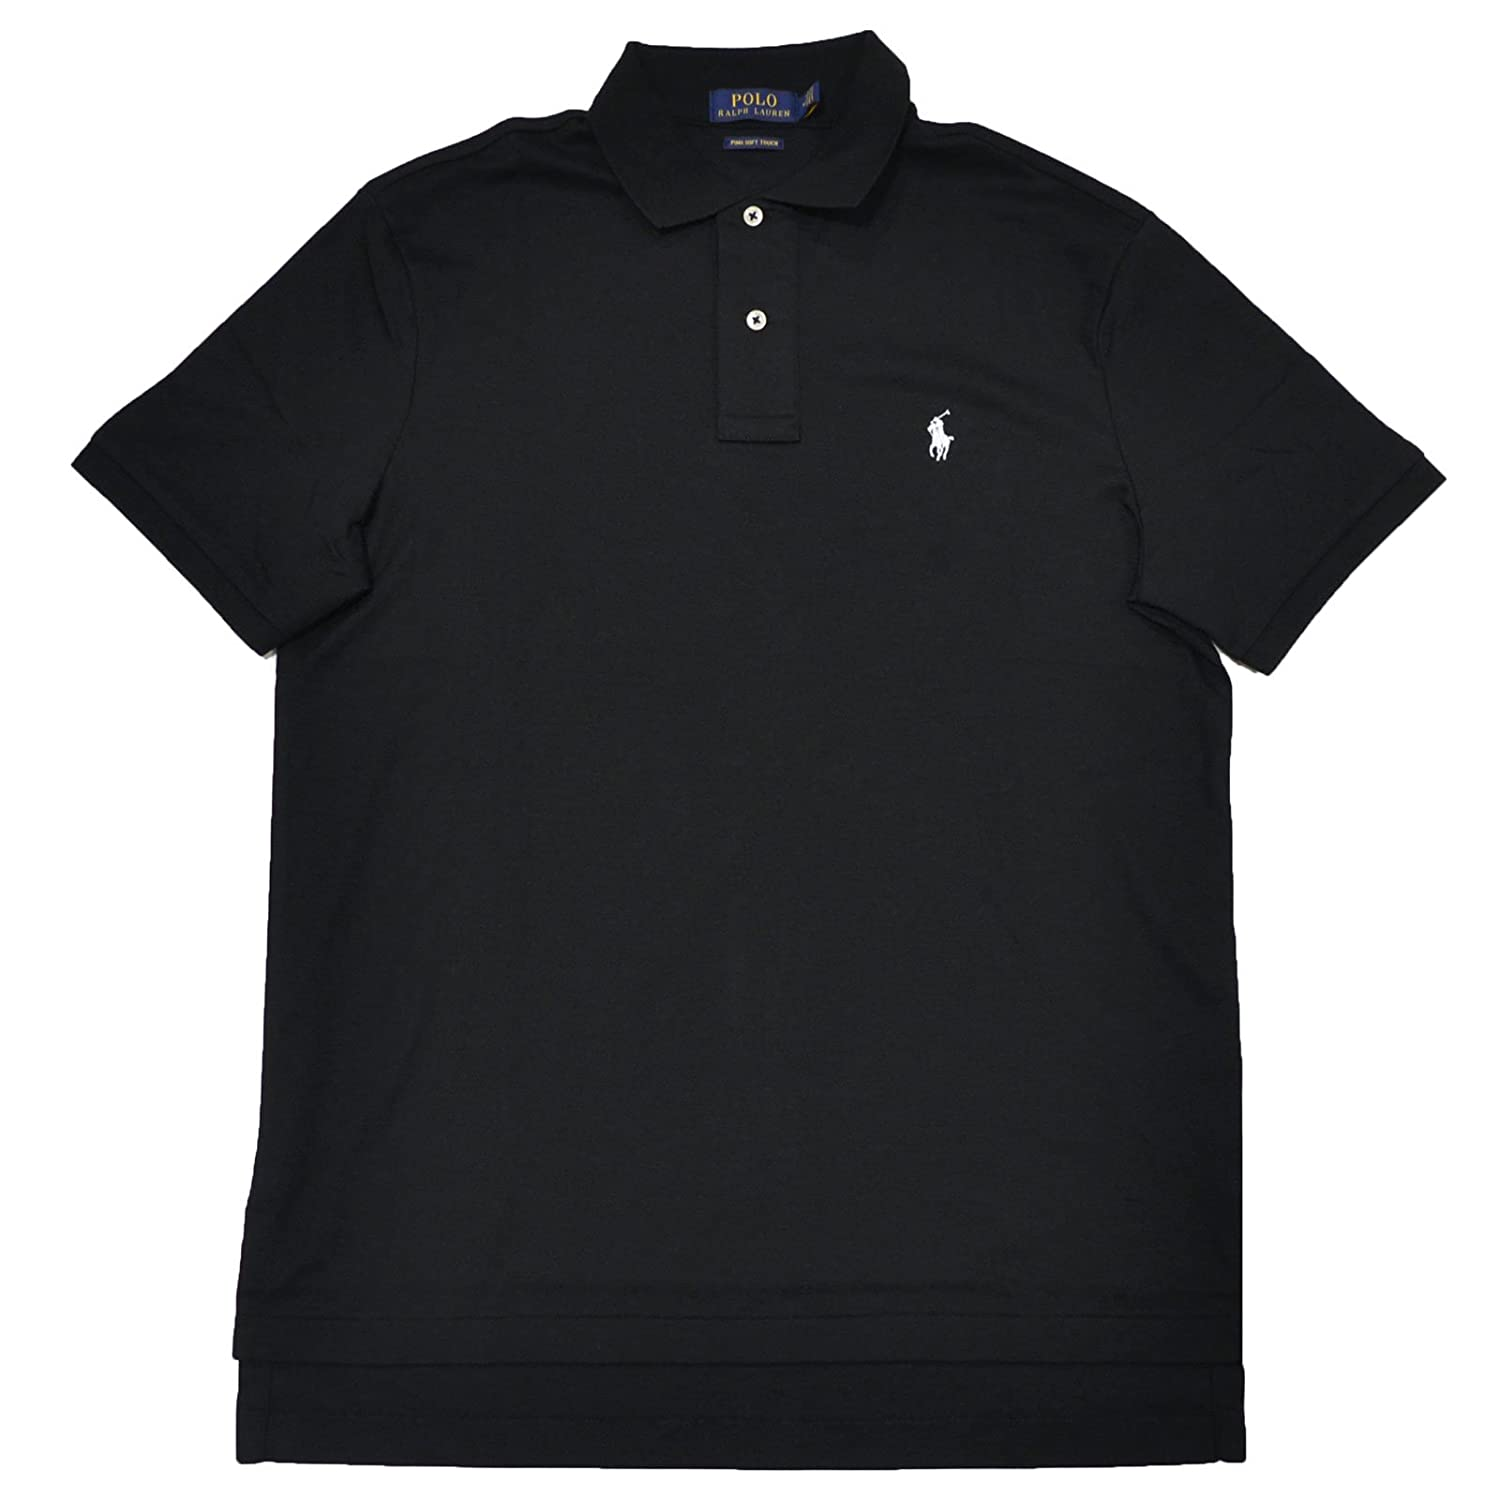 74d9c5107 Polo Ralph Lauren Mens Pima Soft Touch Interlock Polo Shirt at Amazon Men s  Clothing store